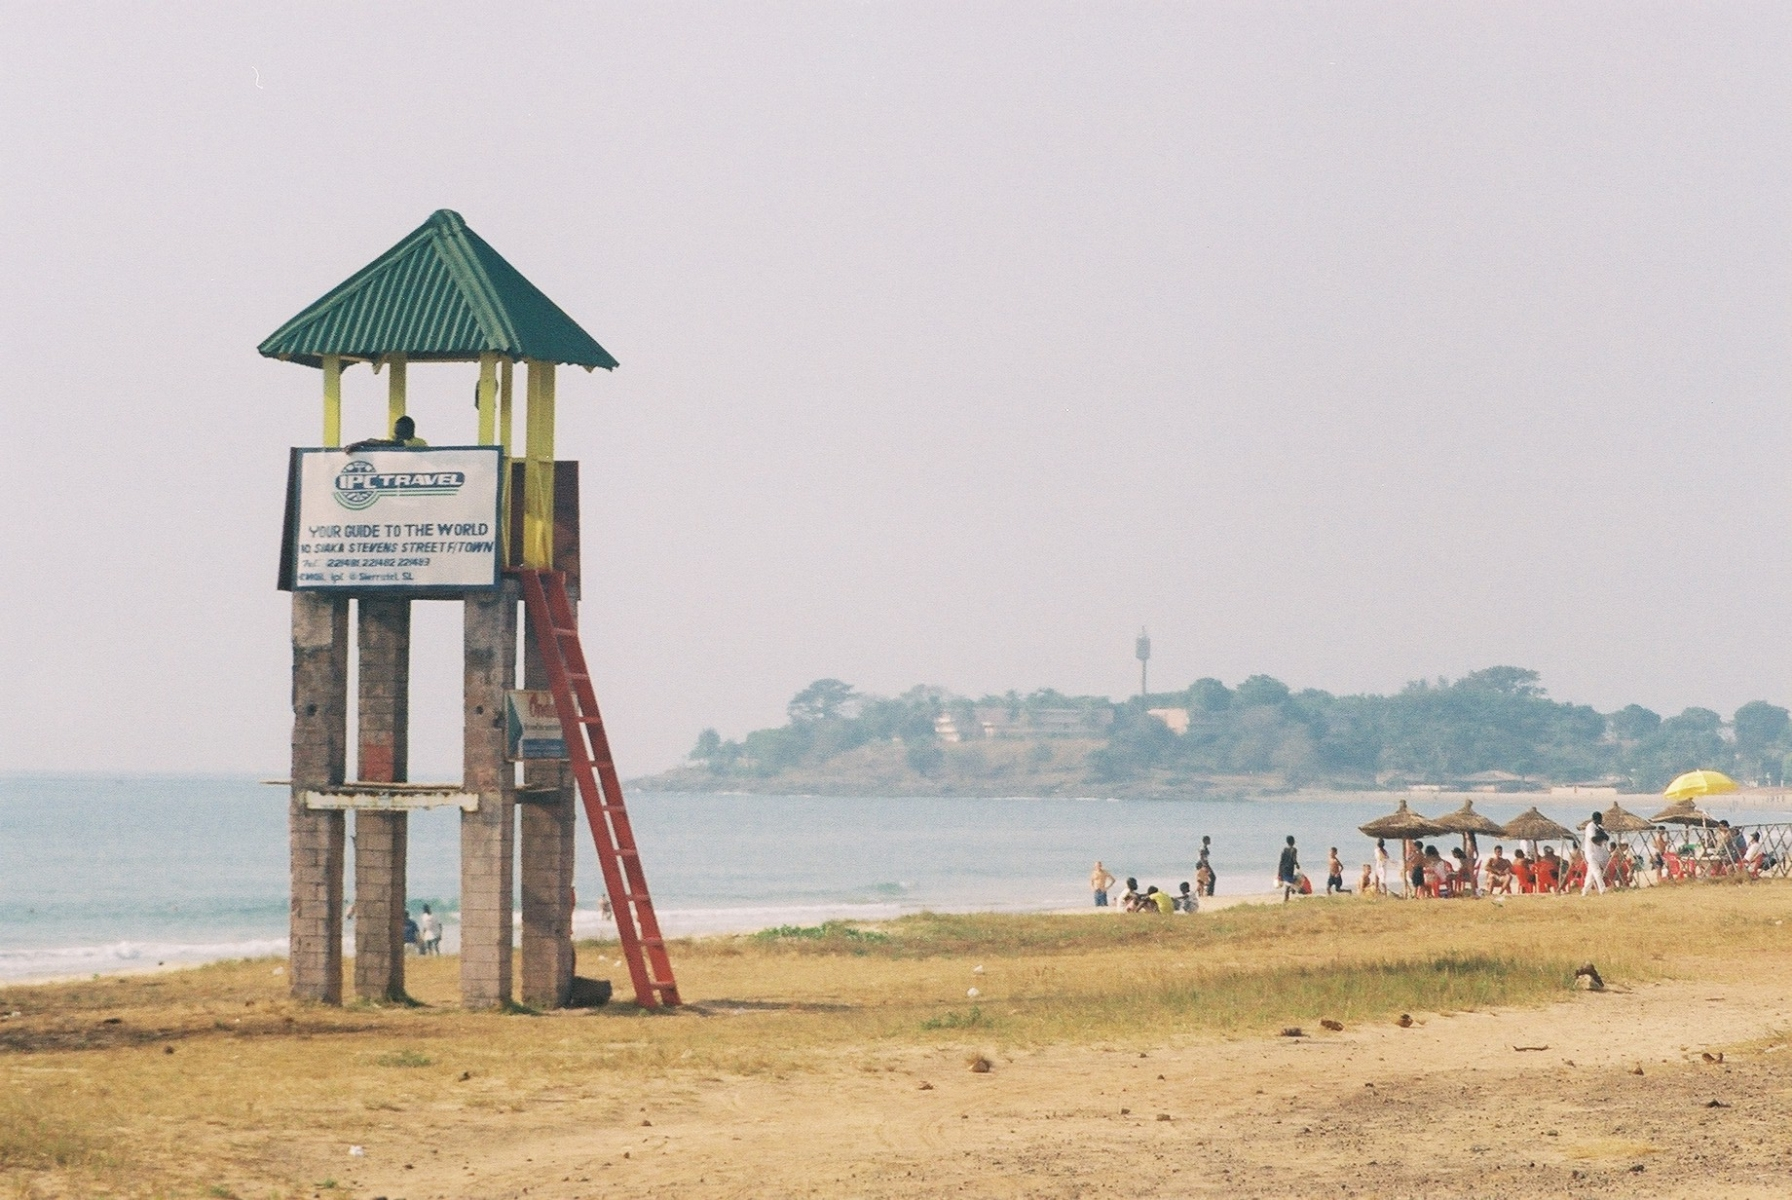 Beach at Njahili